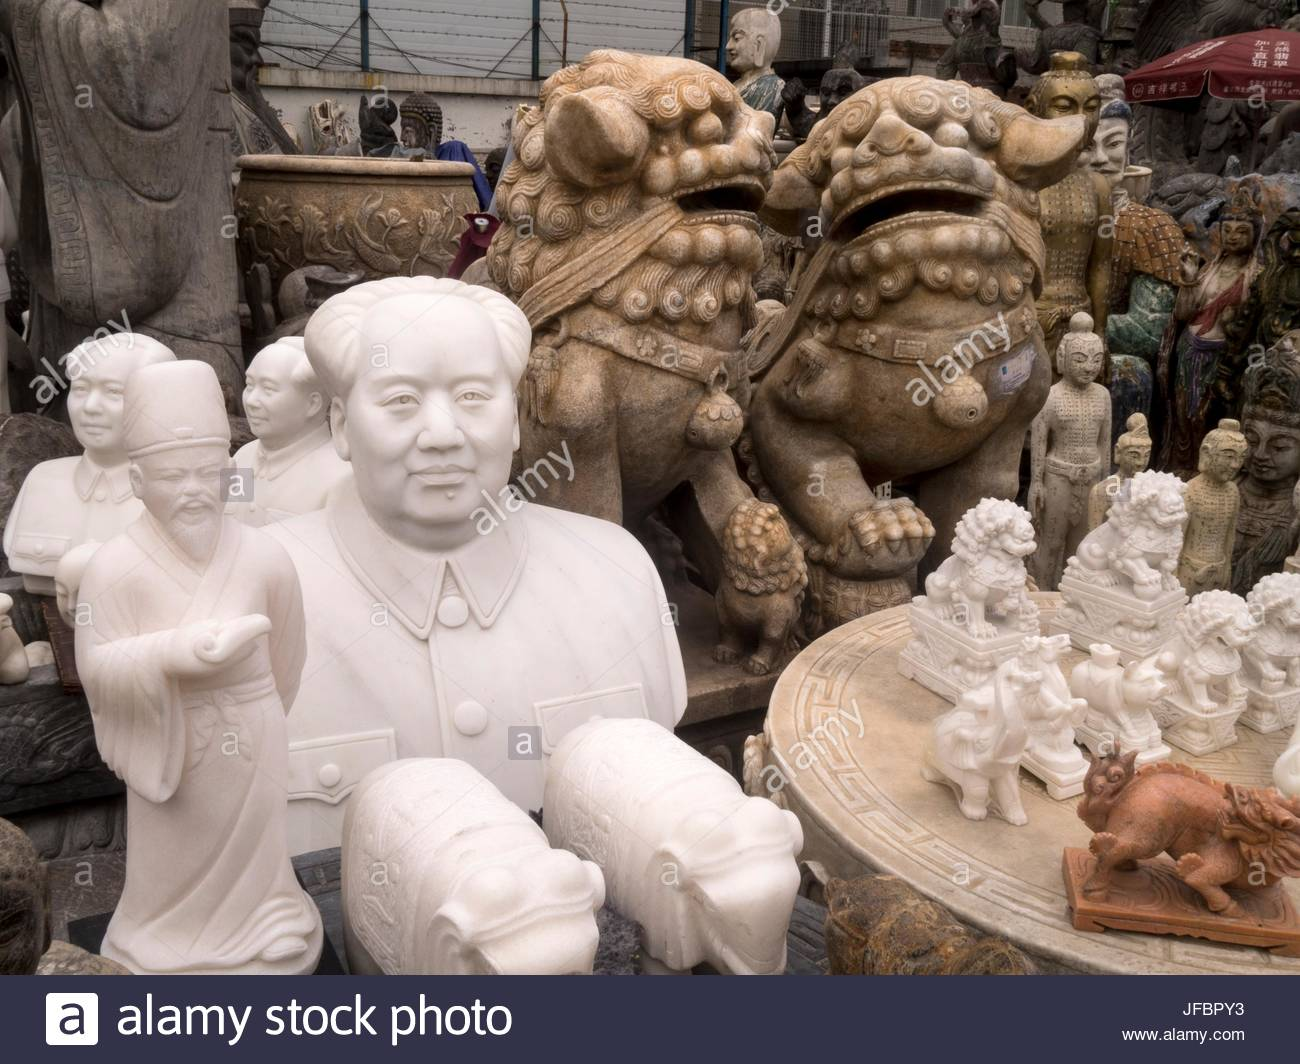 An assortment of statues, including a bust of Mao Tse Tung at the Panjiayuan Market. - Stock Image